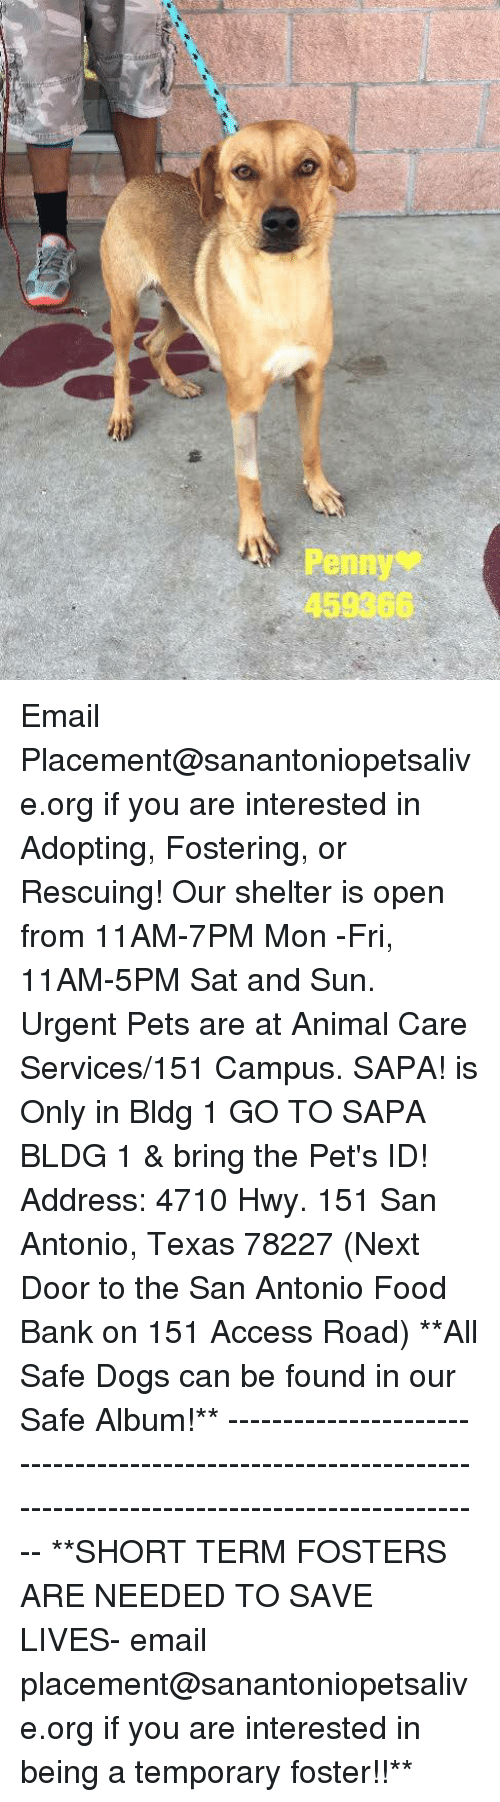 Dogs, Food, and Memes: Penny  458366 Email Placement@sanantoniopetsalive.org if you are interested in Adopting, Fostering, or Rescuing!  Our shelter is open from 11AM-7PM Mon -Fri, 11AM-5PM Sat and Sun.  Urgent Pets are at Animal Care Services/151 Campus. SAPA! is Only in Bldg 1 GO TO SAPA BLDG 1 & bring the Pet's ID! Address: 4710 Hwy. 151 San Antonio, Texas 78227 (Next Door to the San Antonio Food Bank on 151 Access Road)  **All Safe Dogs can be found in our Safe Album!** ---------------------------------------------------------------------------------------------------------- **SHORT TERM FOSTERS ARE NEEDED TO SAVE LIVES- email placement@sanantoniopetsalive.org if you are interested in being a temporary foster!!**